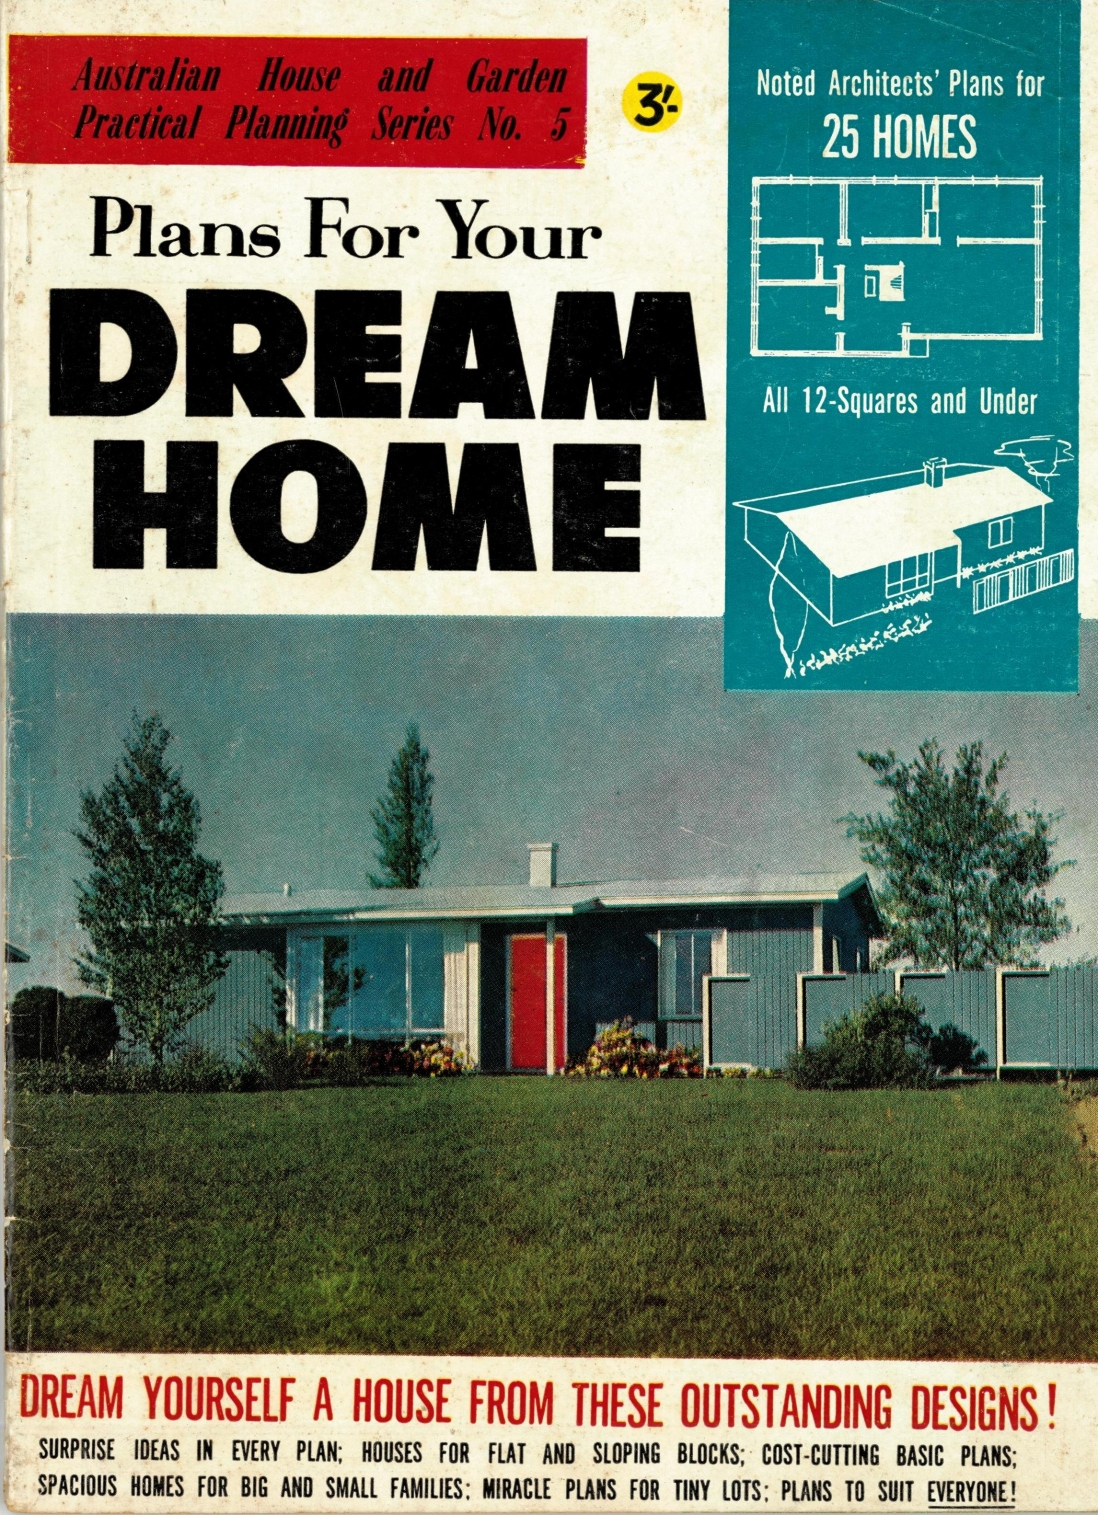 Plans for your dream home